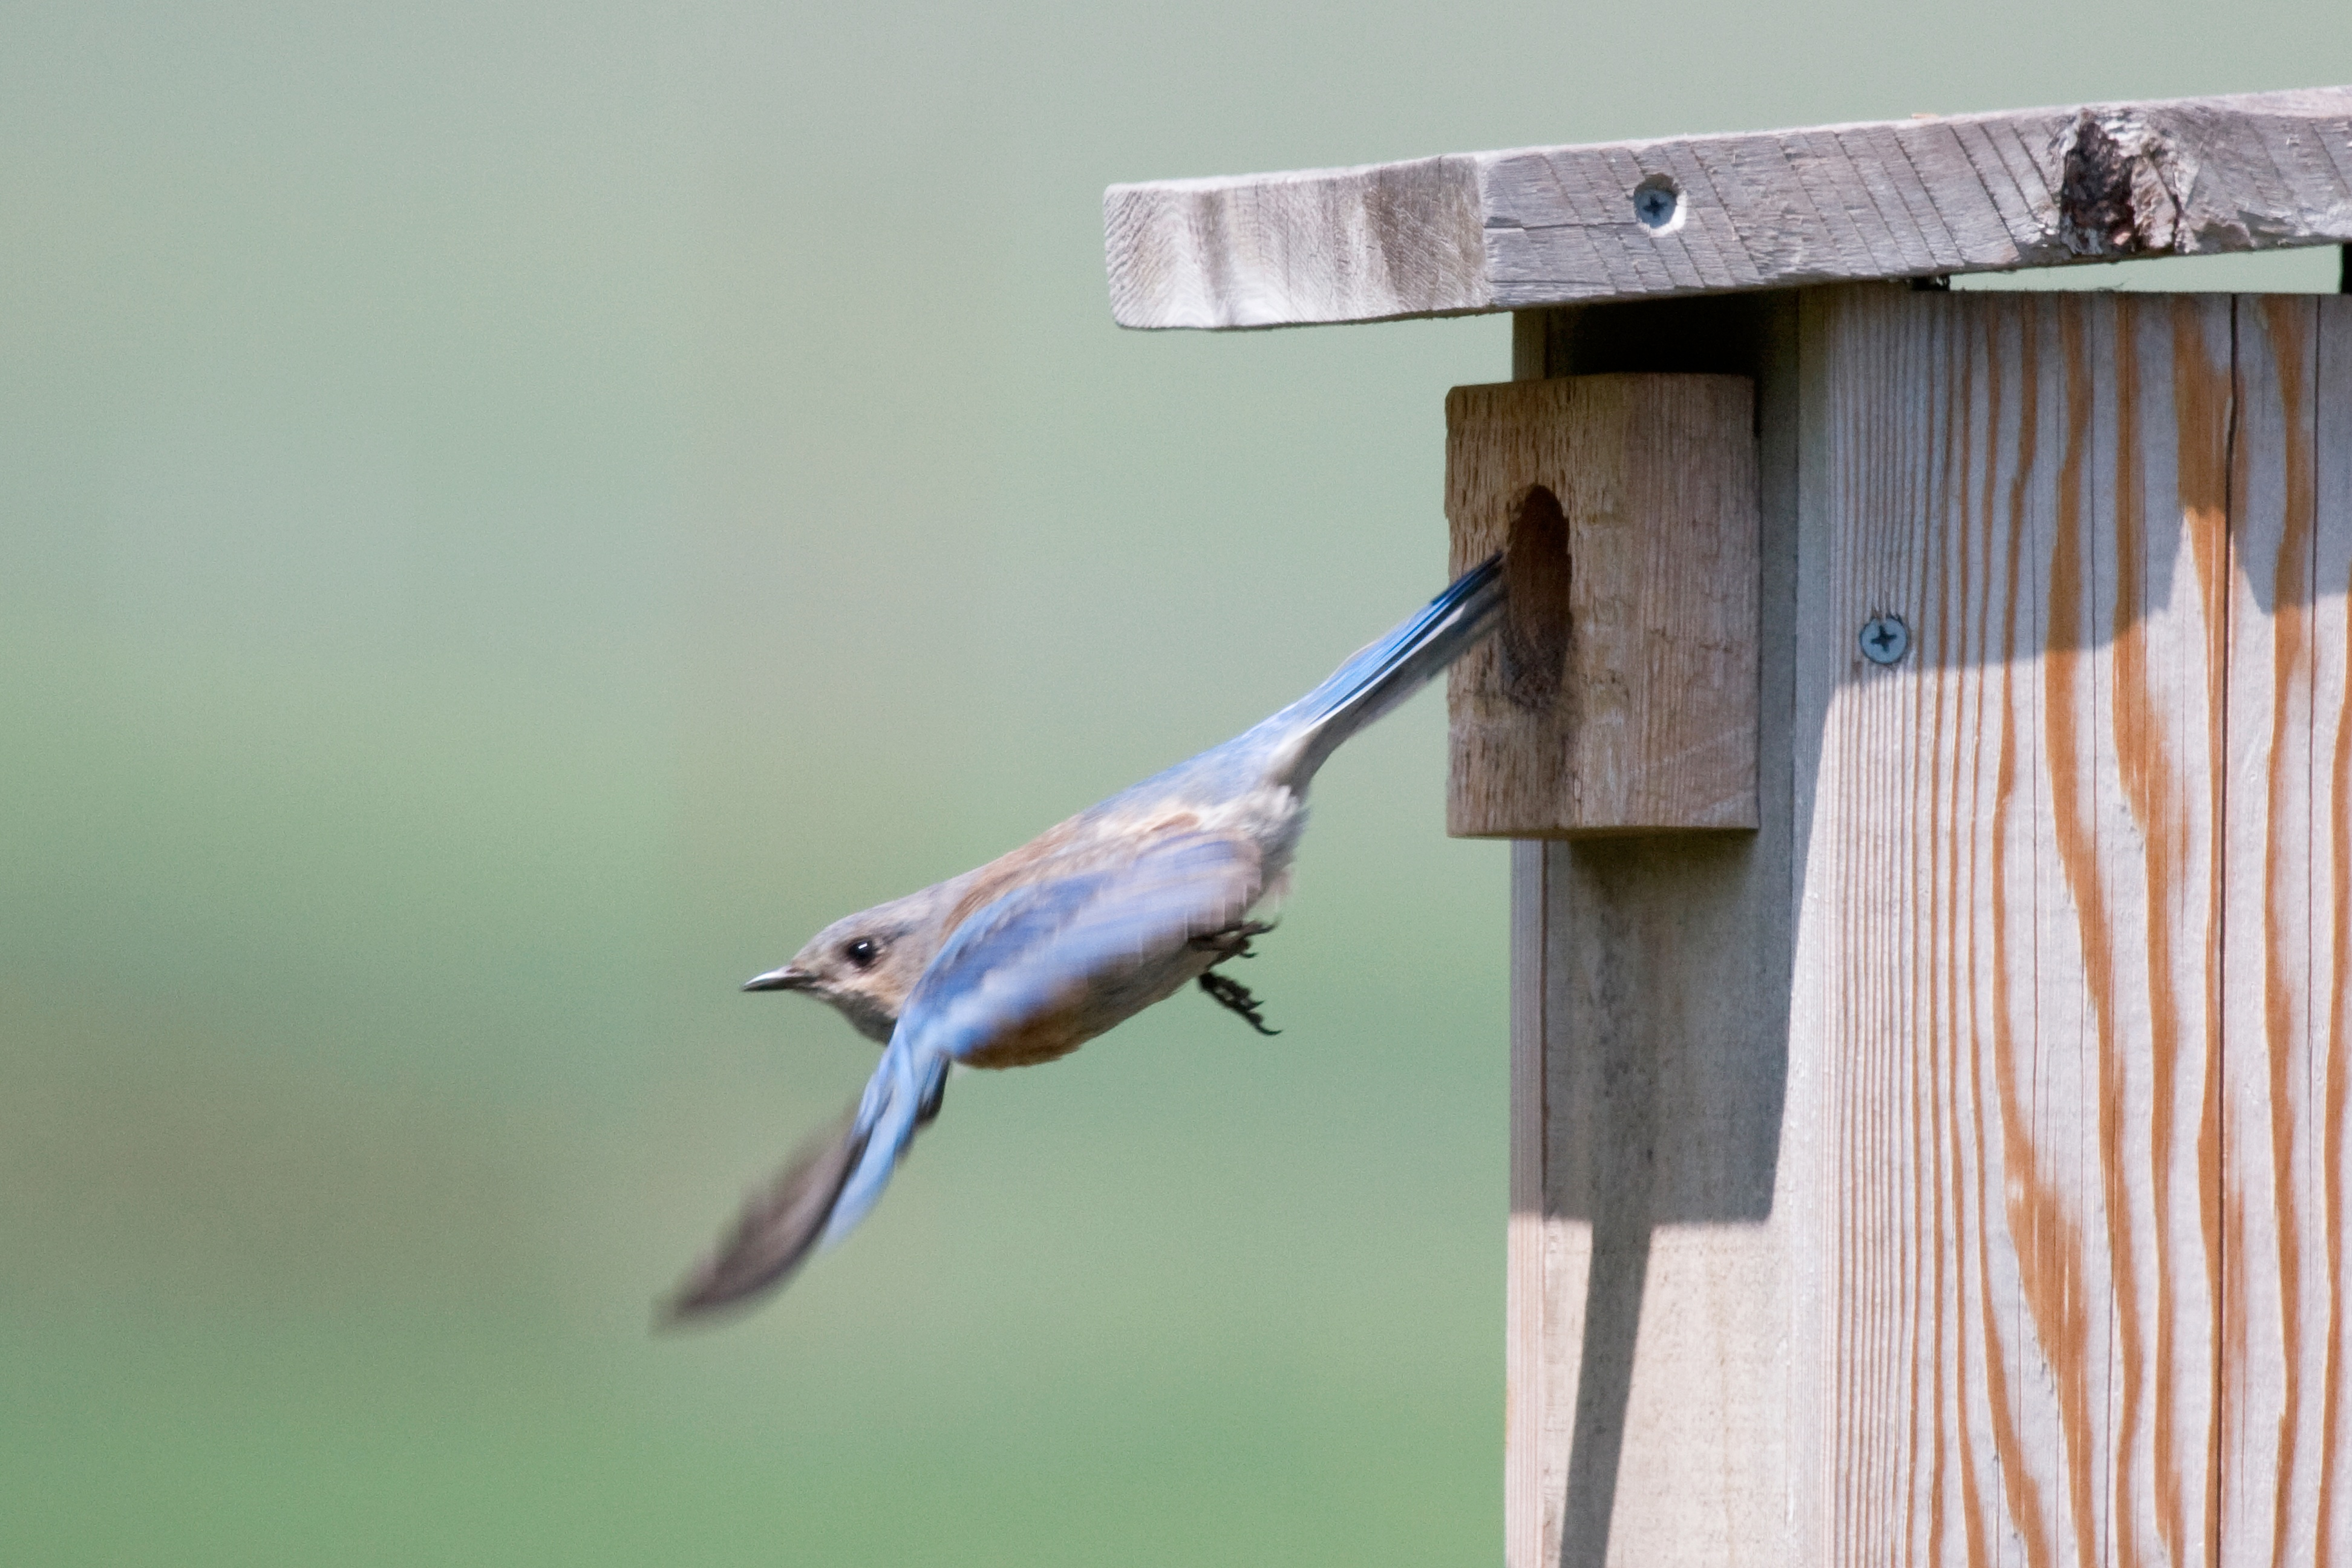 Bluebird leaving nest box and starting to fly